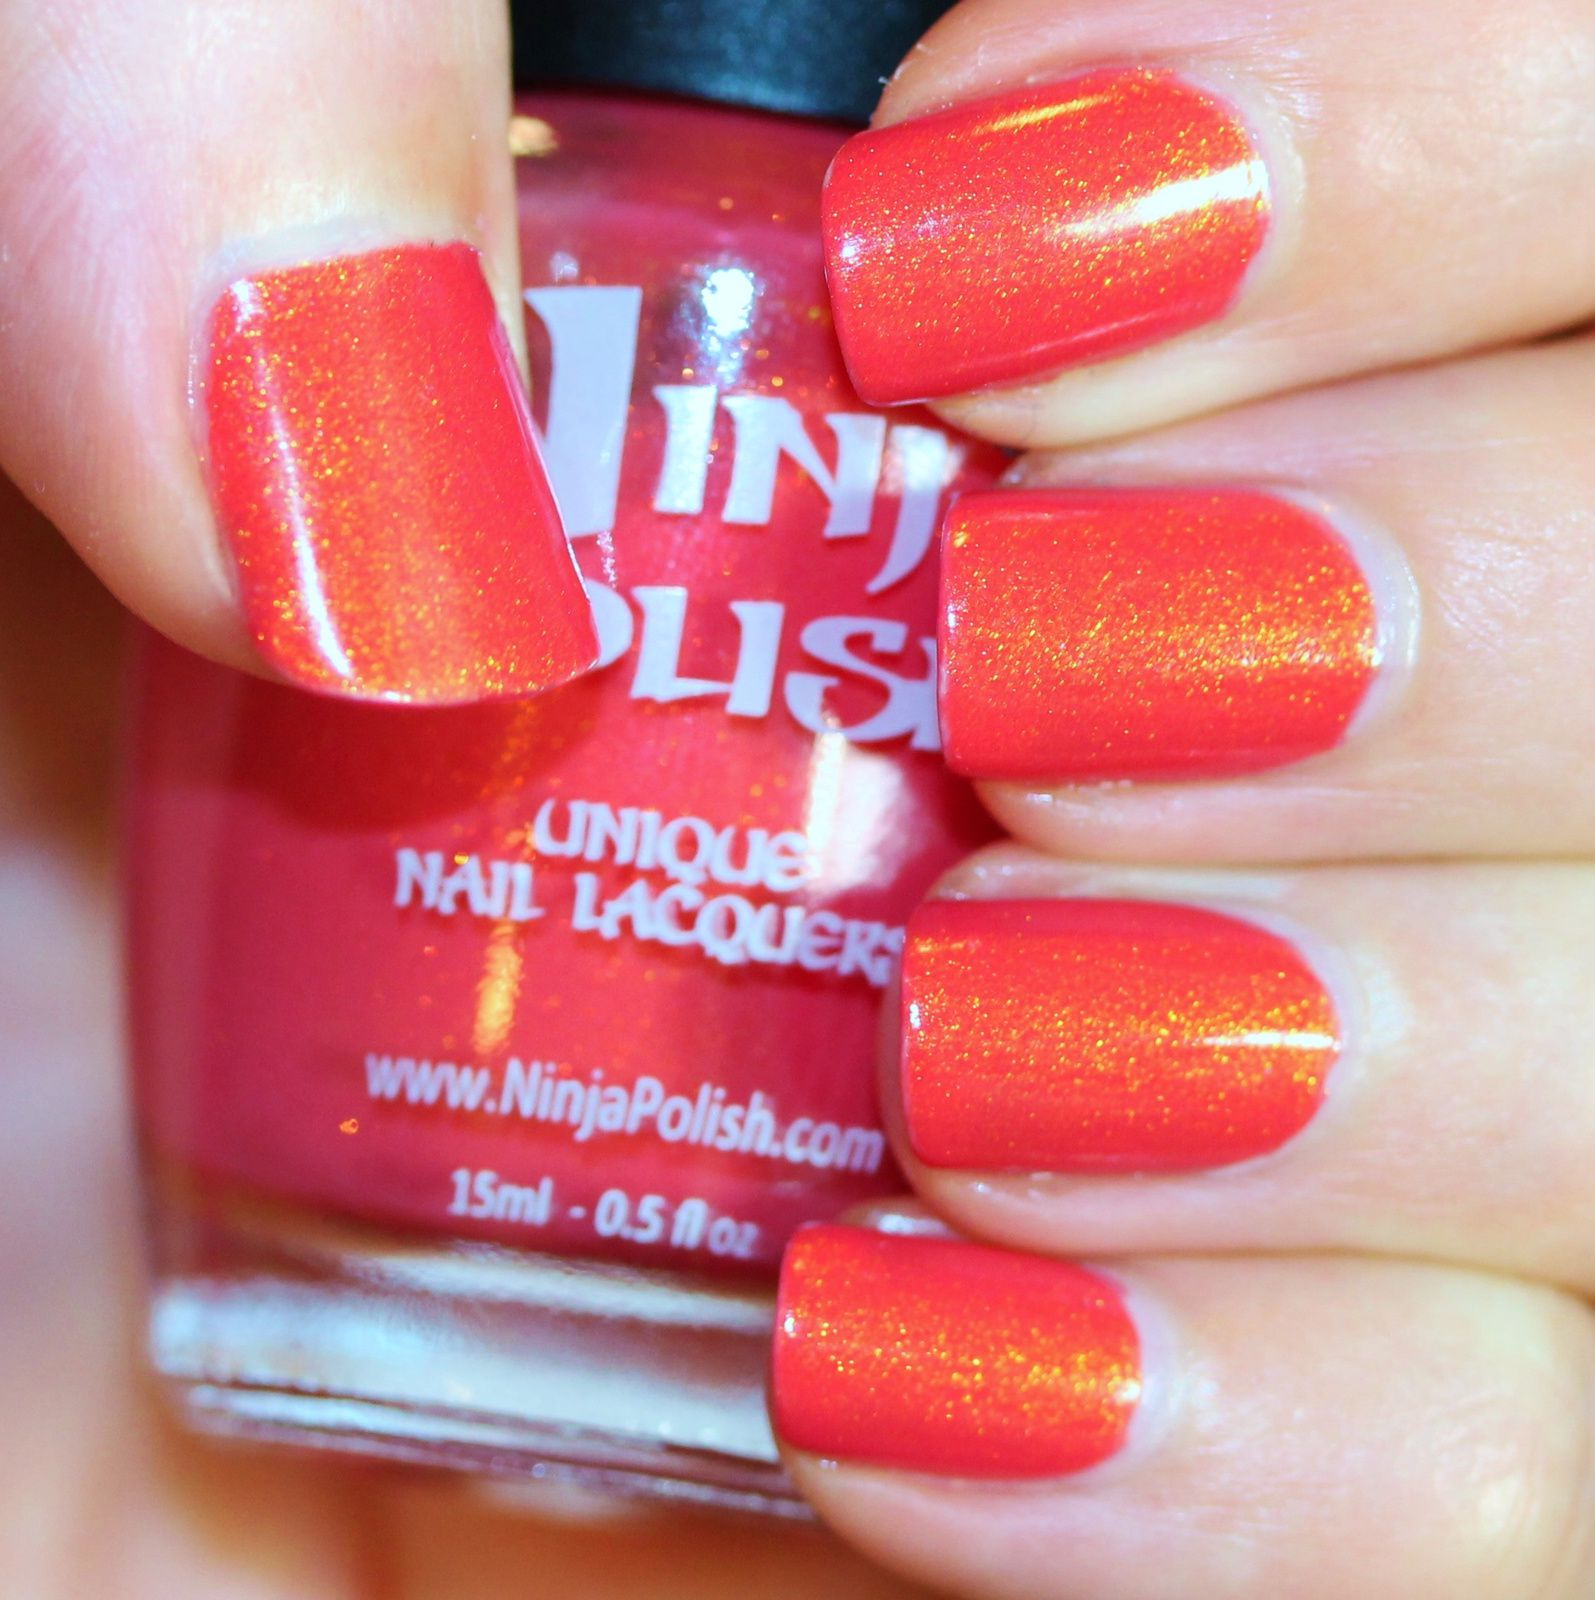 Duri Rejuvacote / Ninja Polish Pacific Coral / Sally Hansen Miracle Gel Top Coat